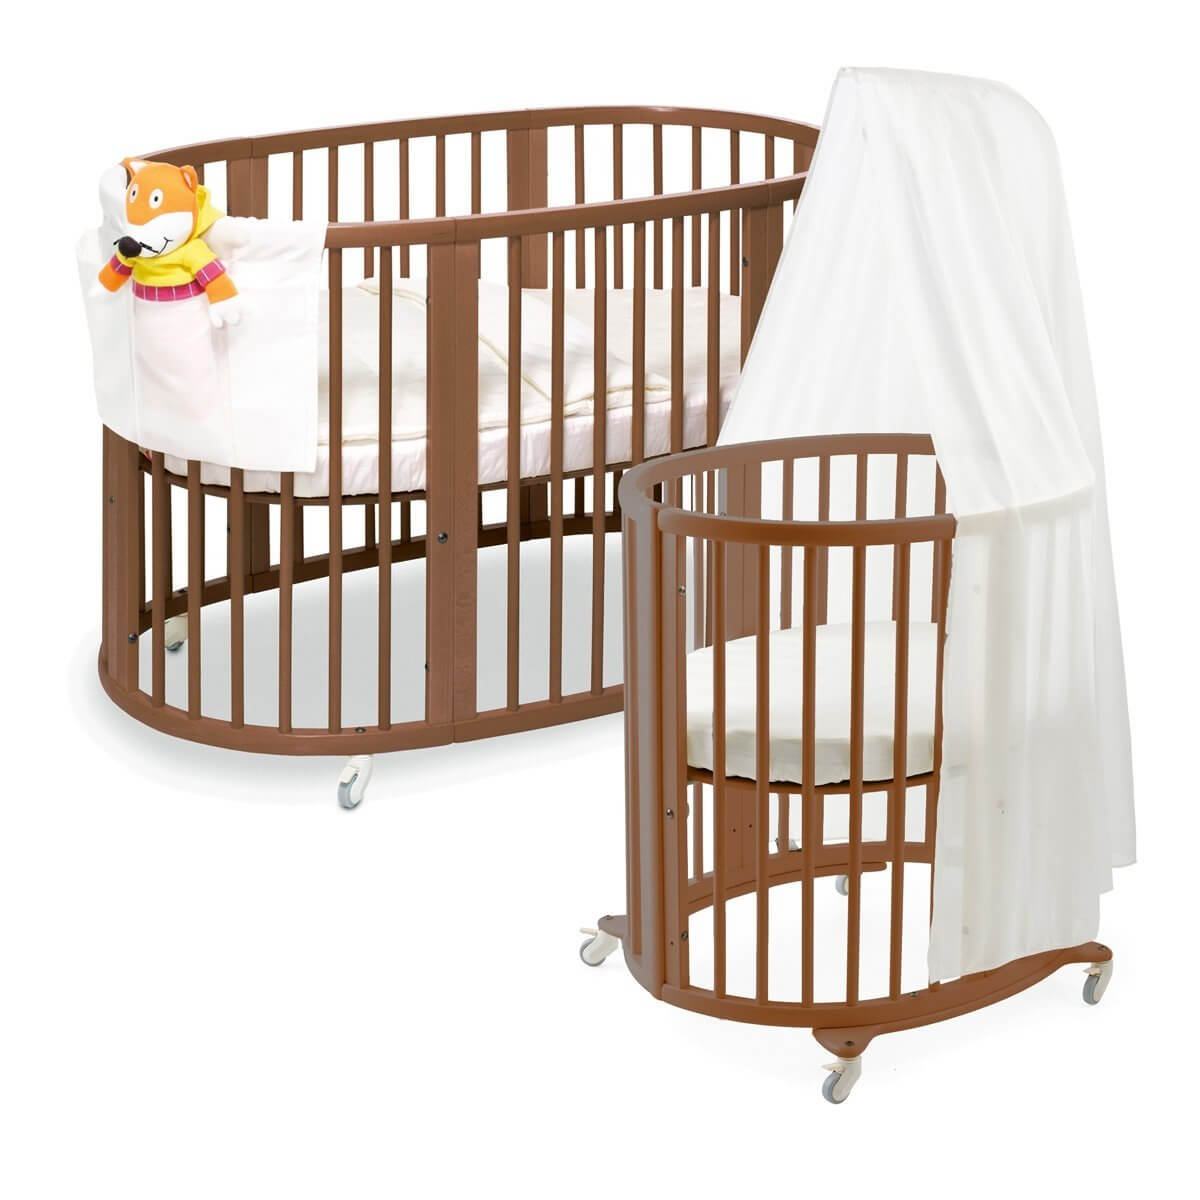 Crib for babies philippines - Baby Cribs Yard Sales Round Baby Cribs